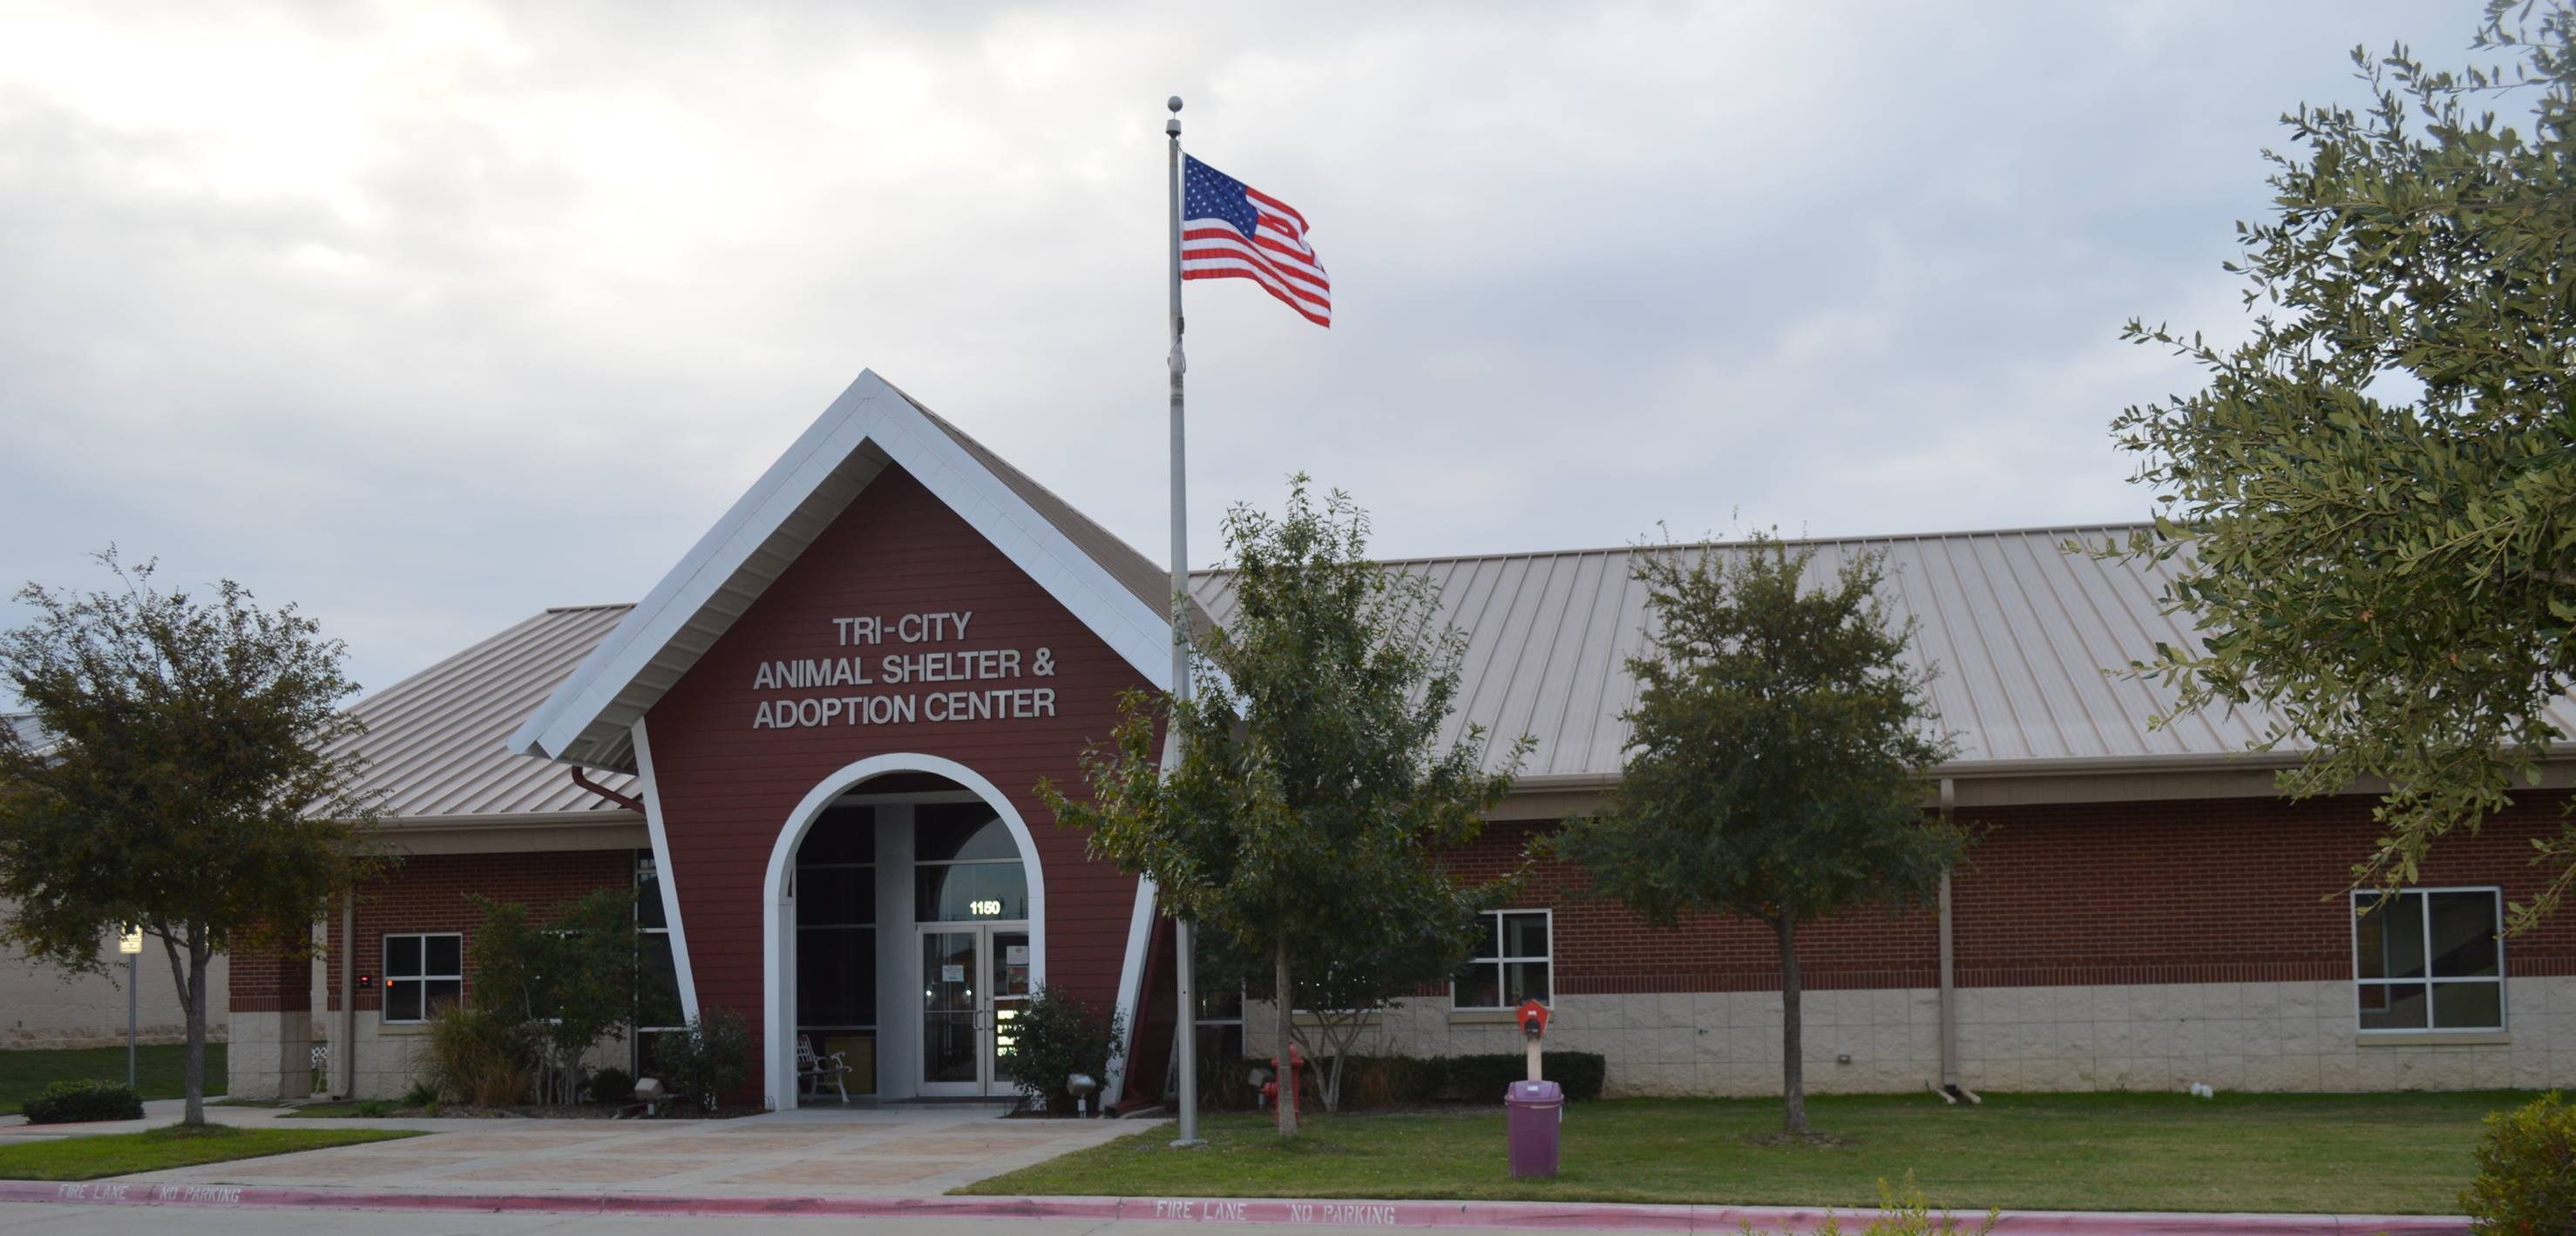 Tri-City Animal Shelter